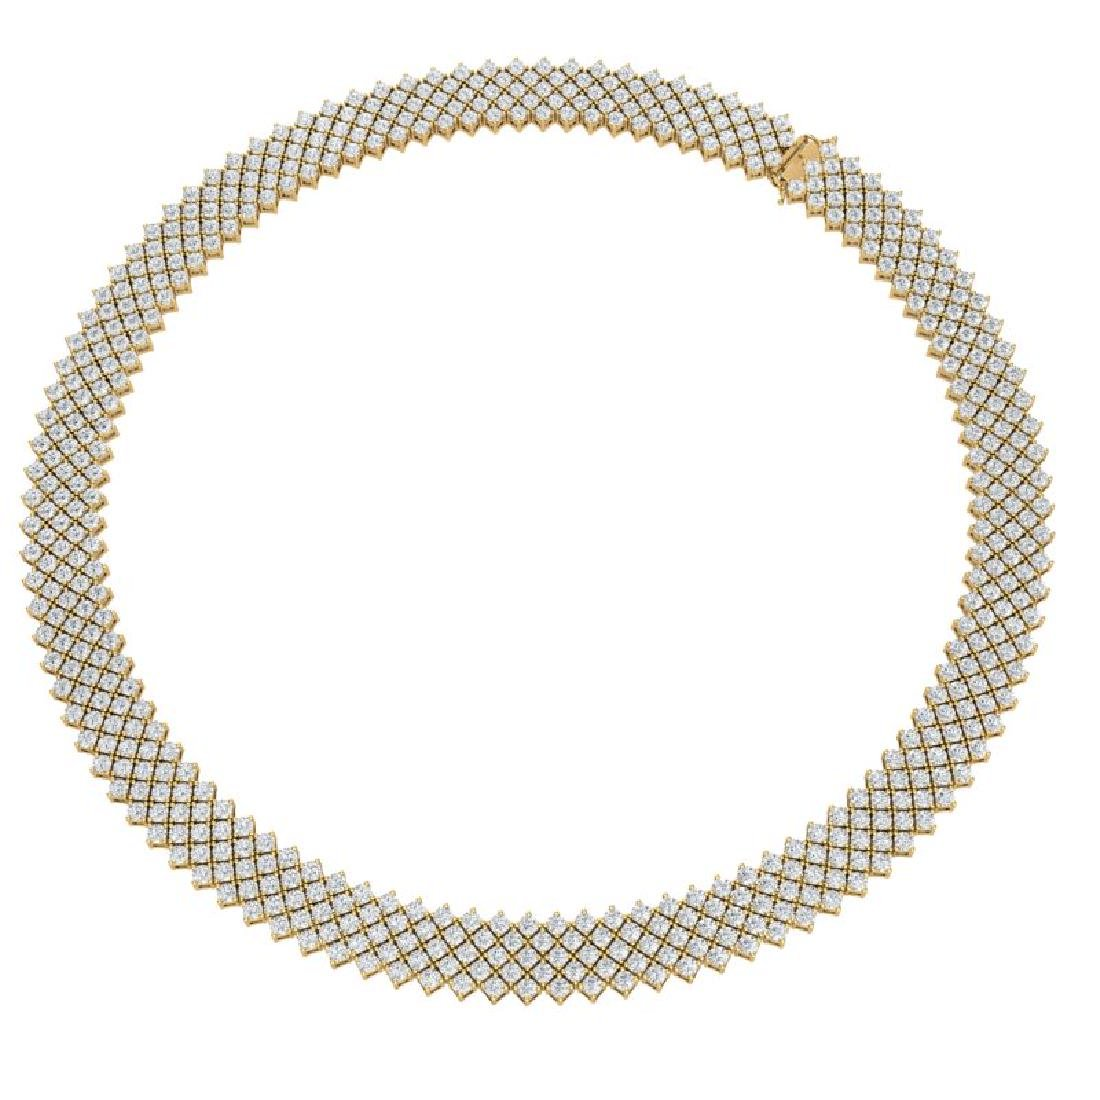 40 CTW Certified VS/SI Diamond Necklace 18K Yellow Gold - 2